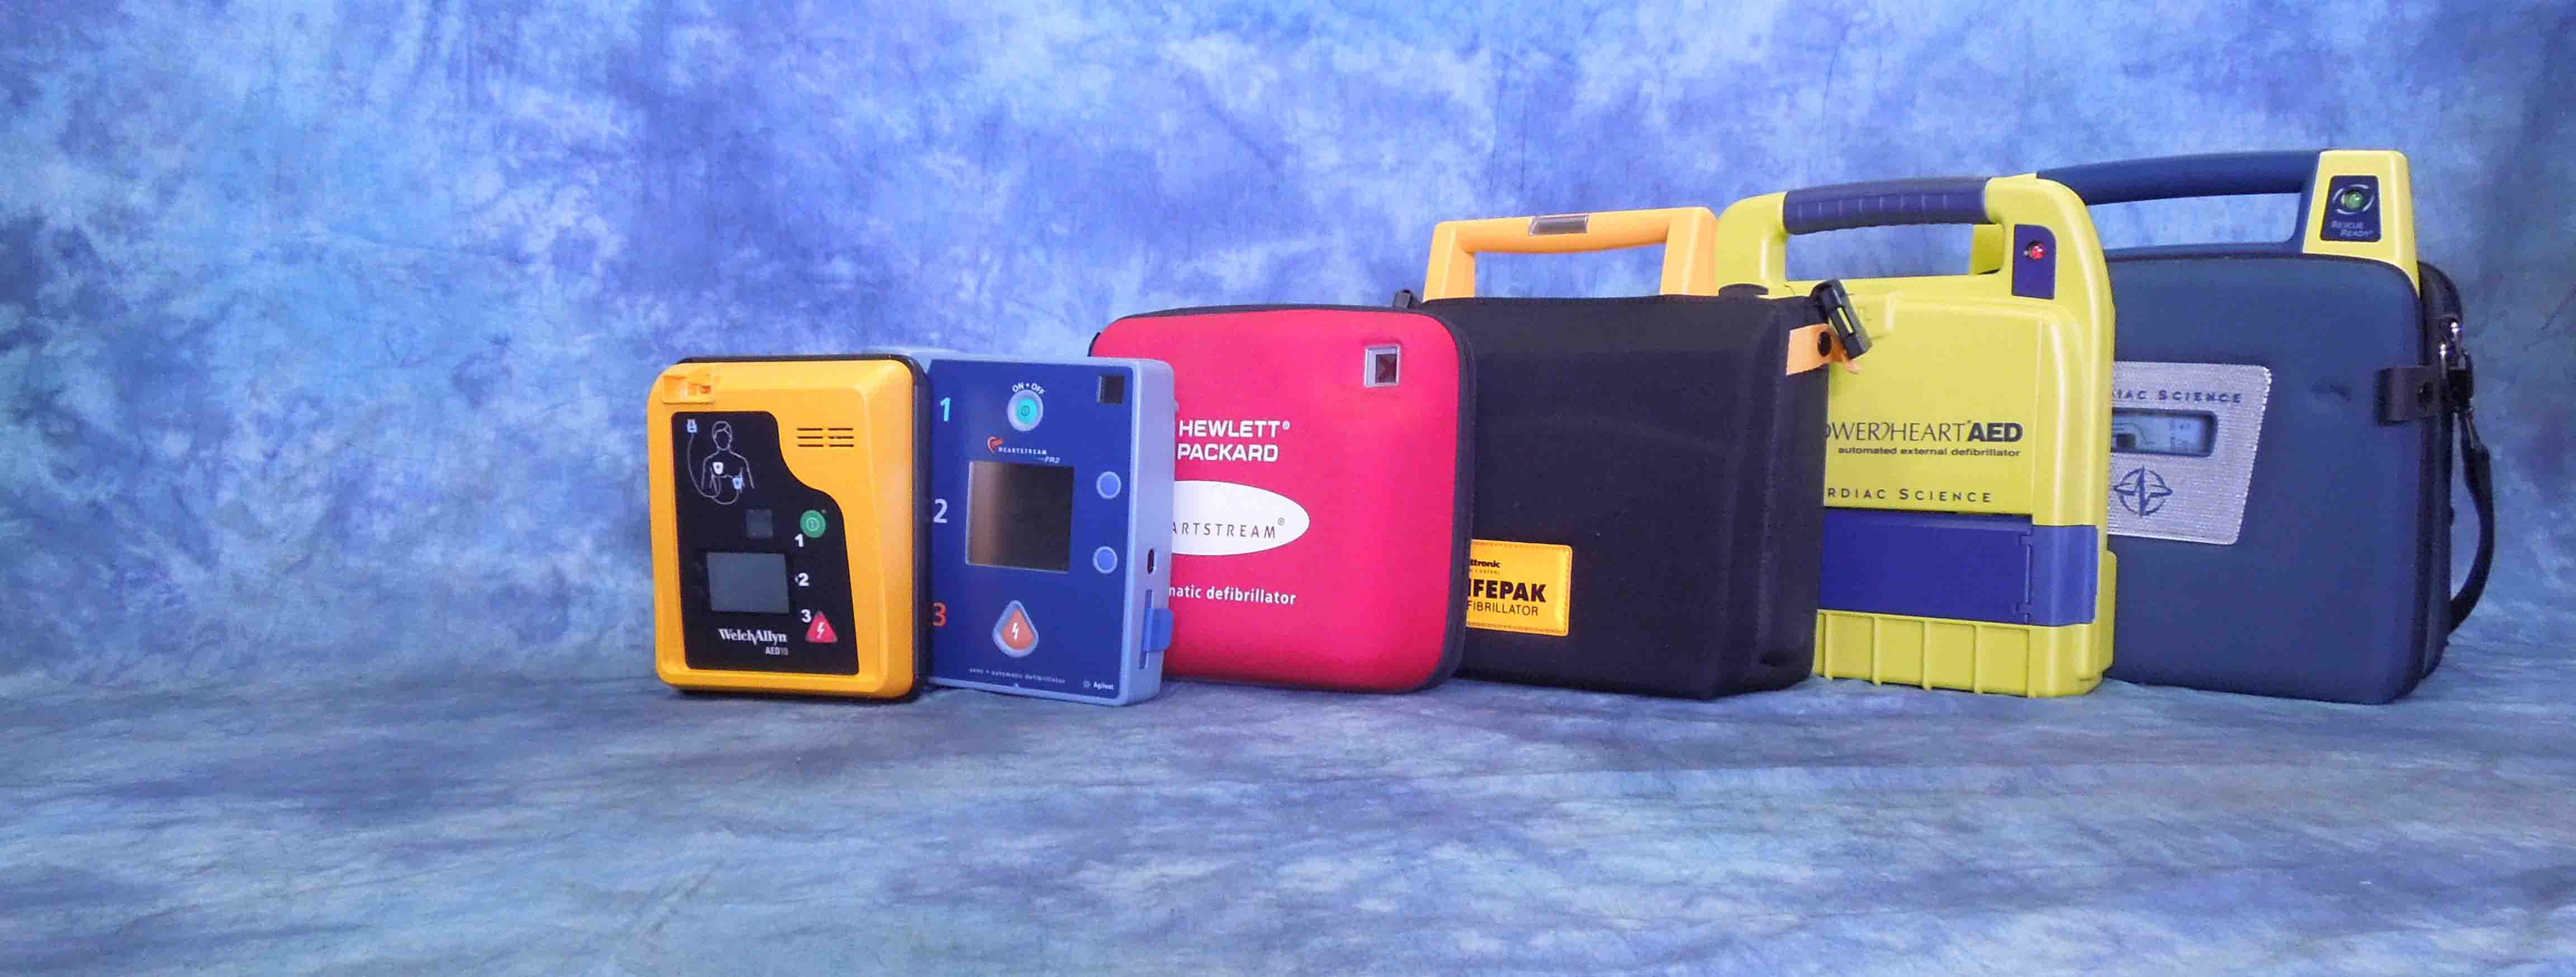 Trade In Your Old AED